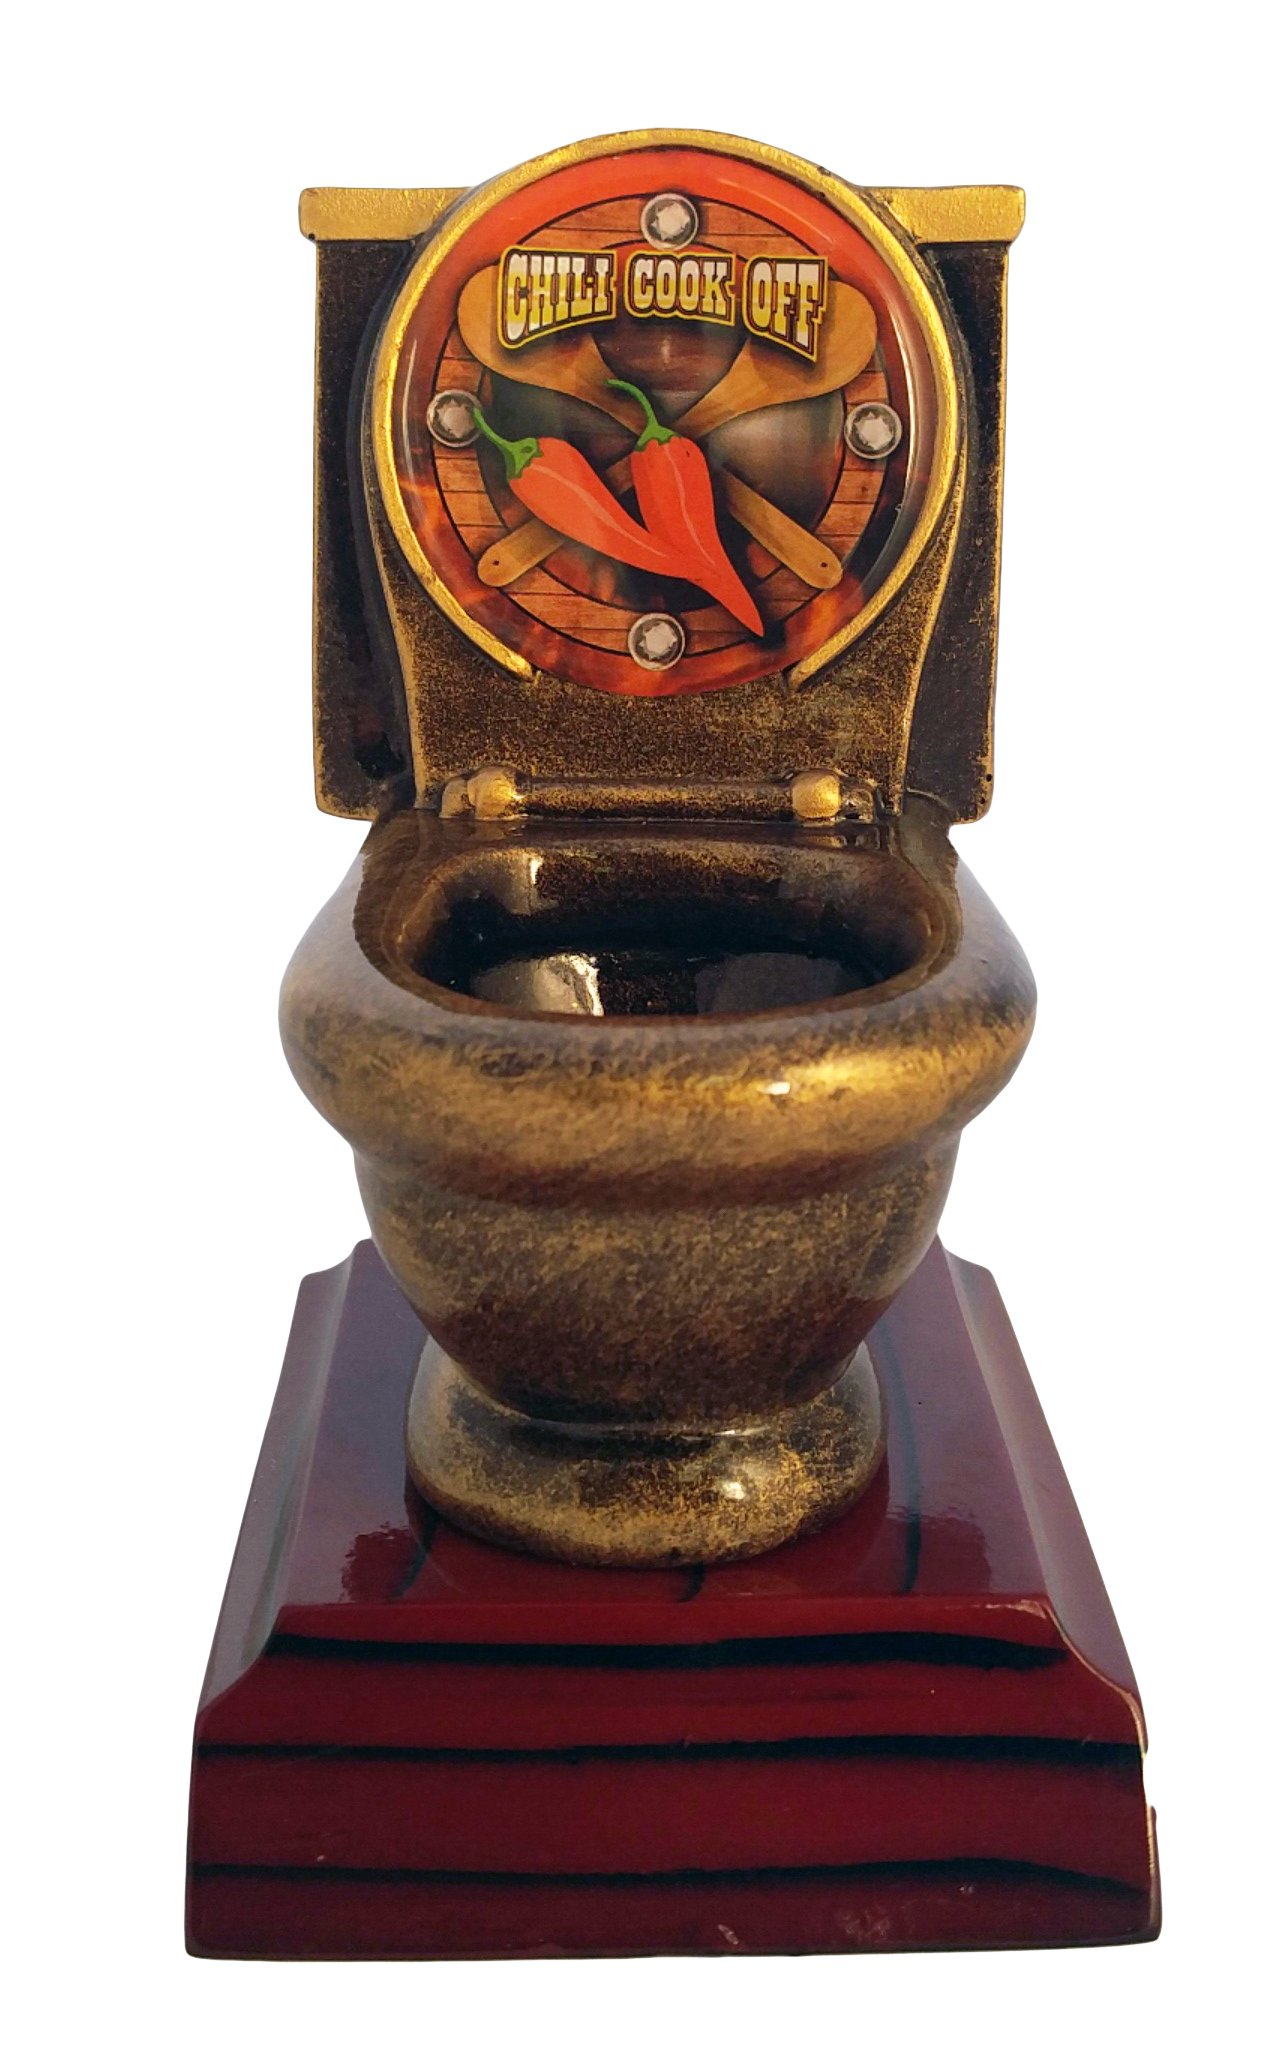 Decade Awards Chili Cook-Off Toilet Bowl Trophy/Chilli Competition Award/Last Place Award | 5 Inch